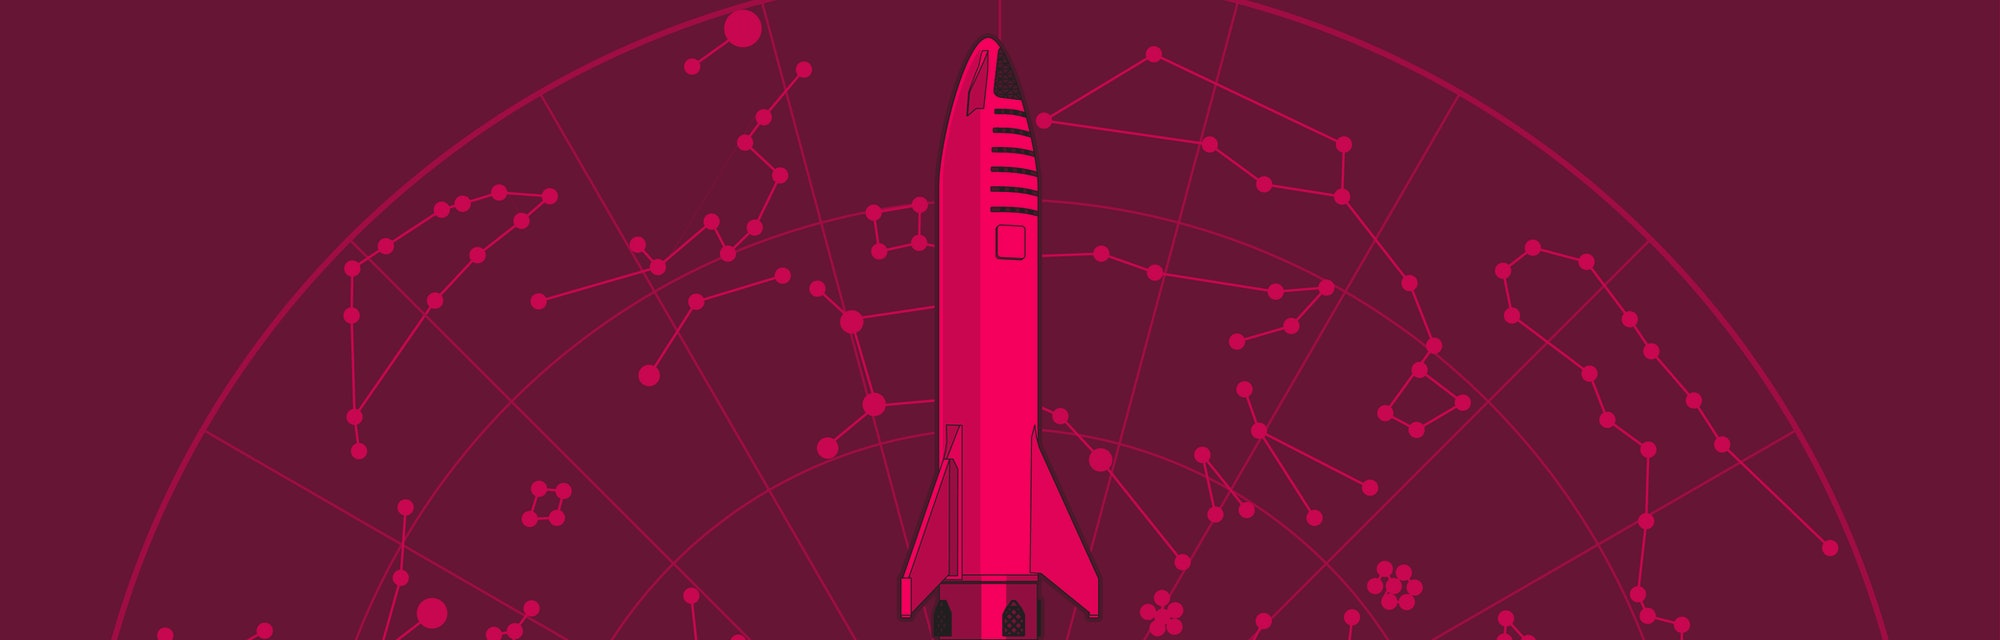 SpaceX rocket BFR Starship launching vector retro style illustration. Future is Now art. Elon Musk rocket BFR Starship. Vector cartoon SpaceX Big Falcon Rocket spaceship: web, postcard, poster, print.